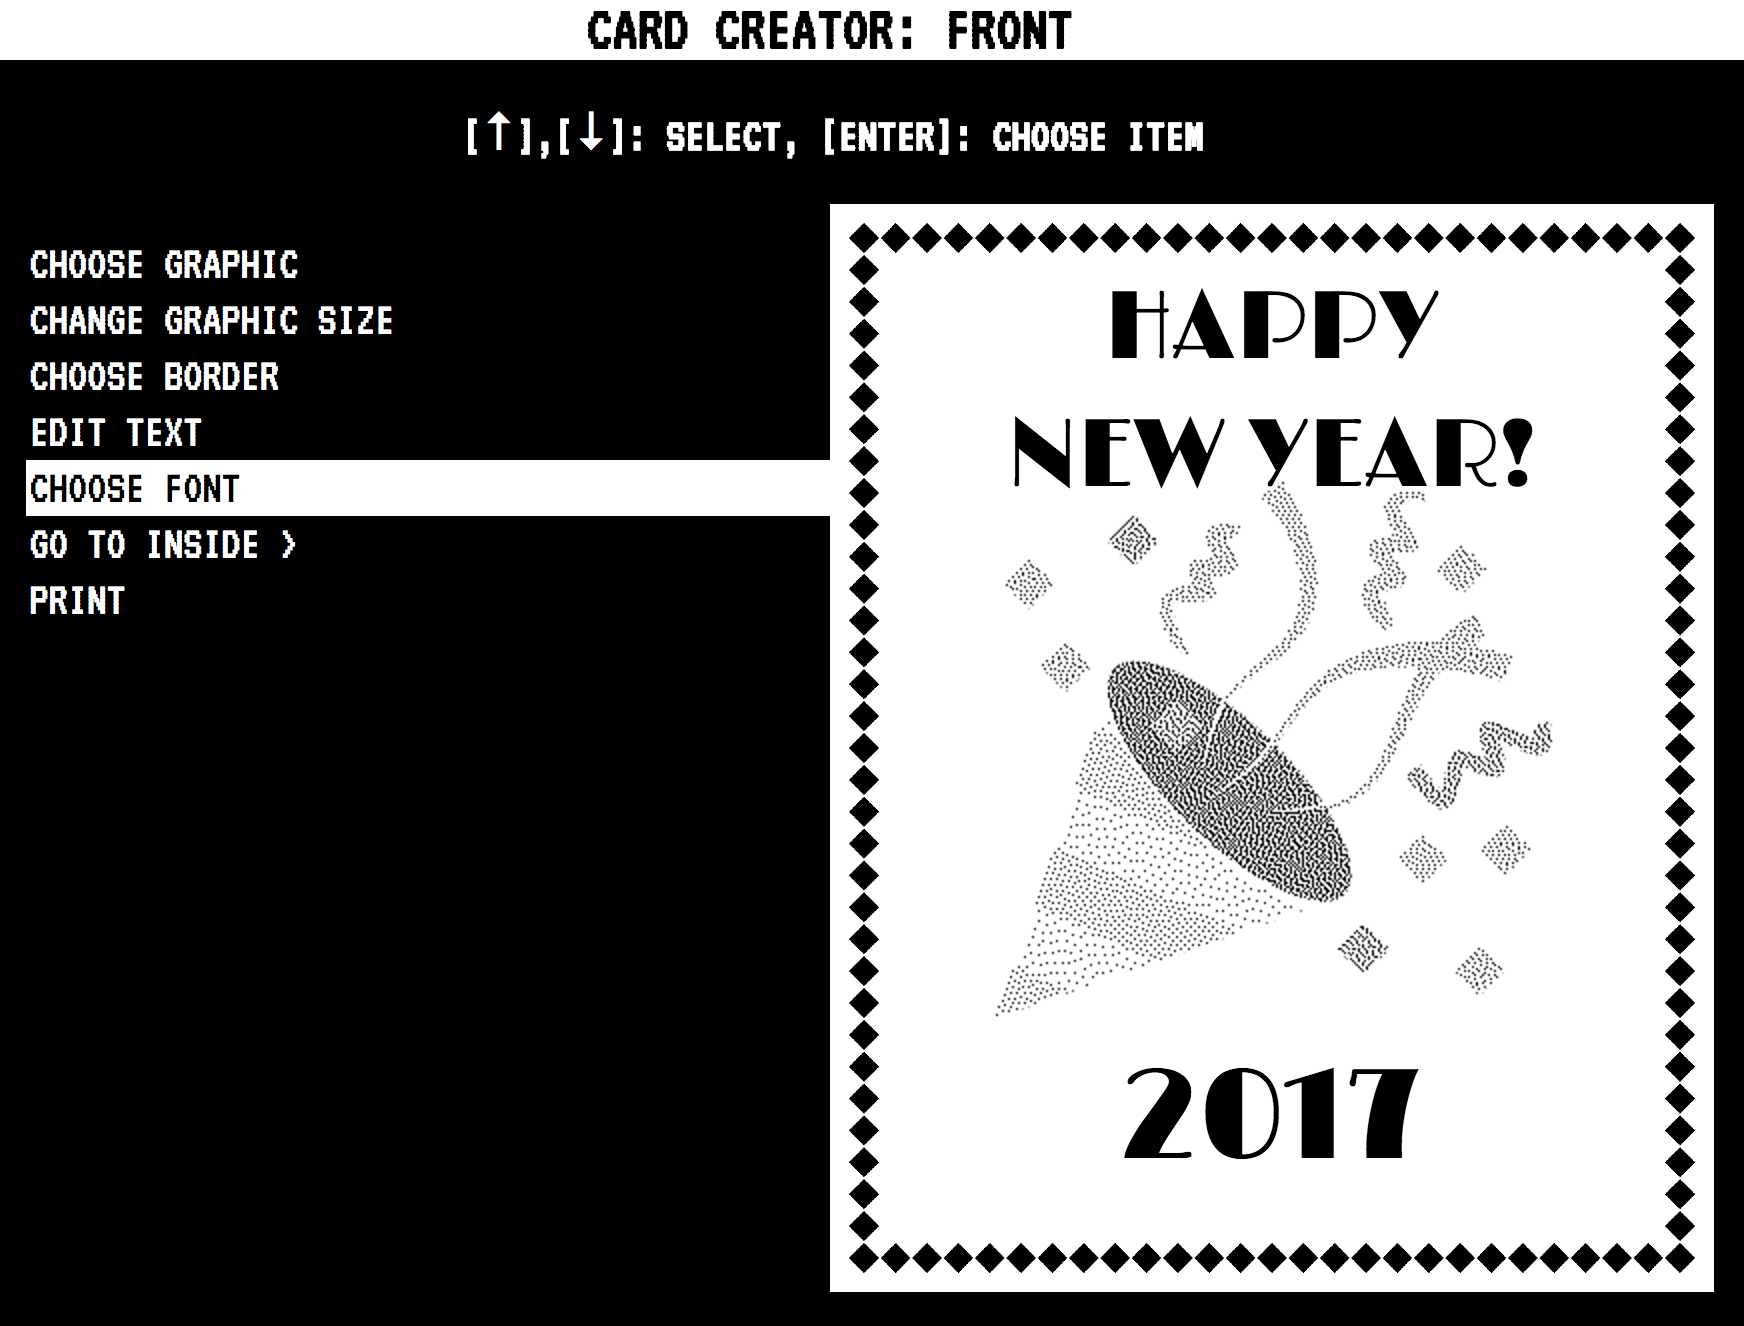 Making a new years card